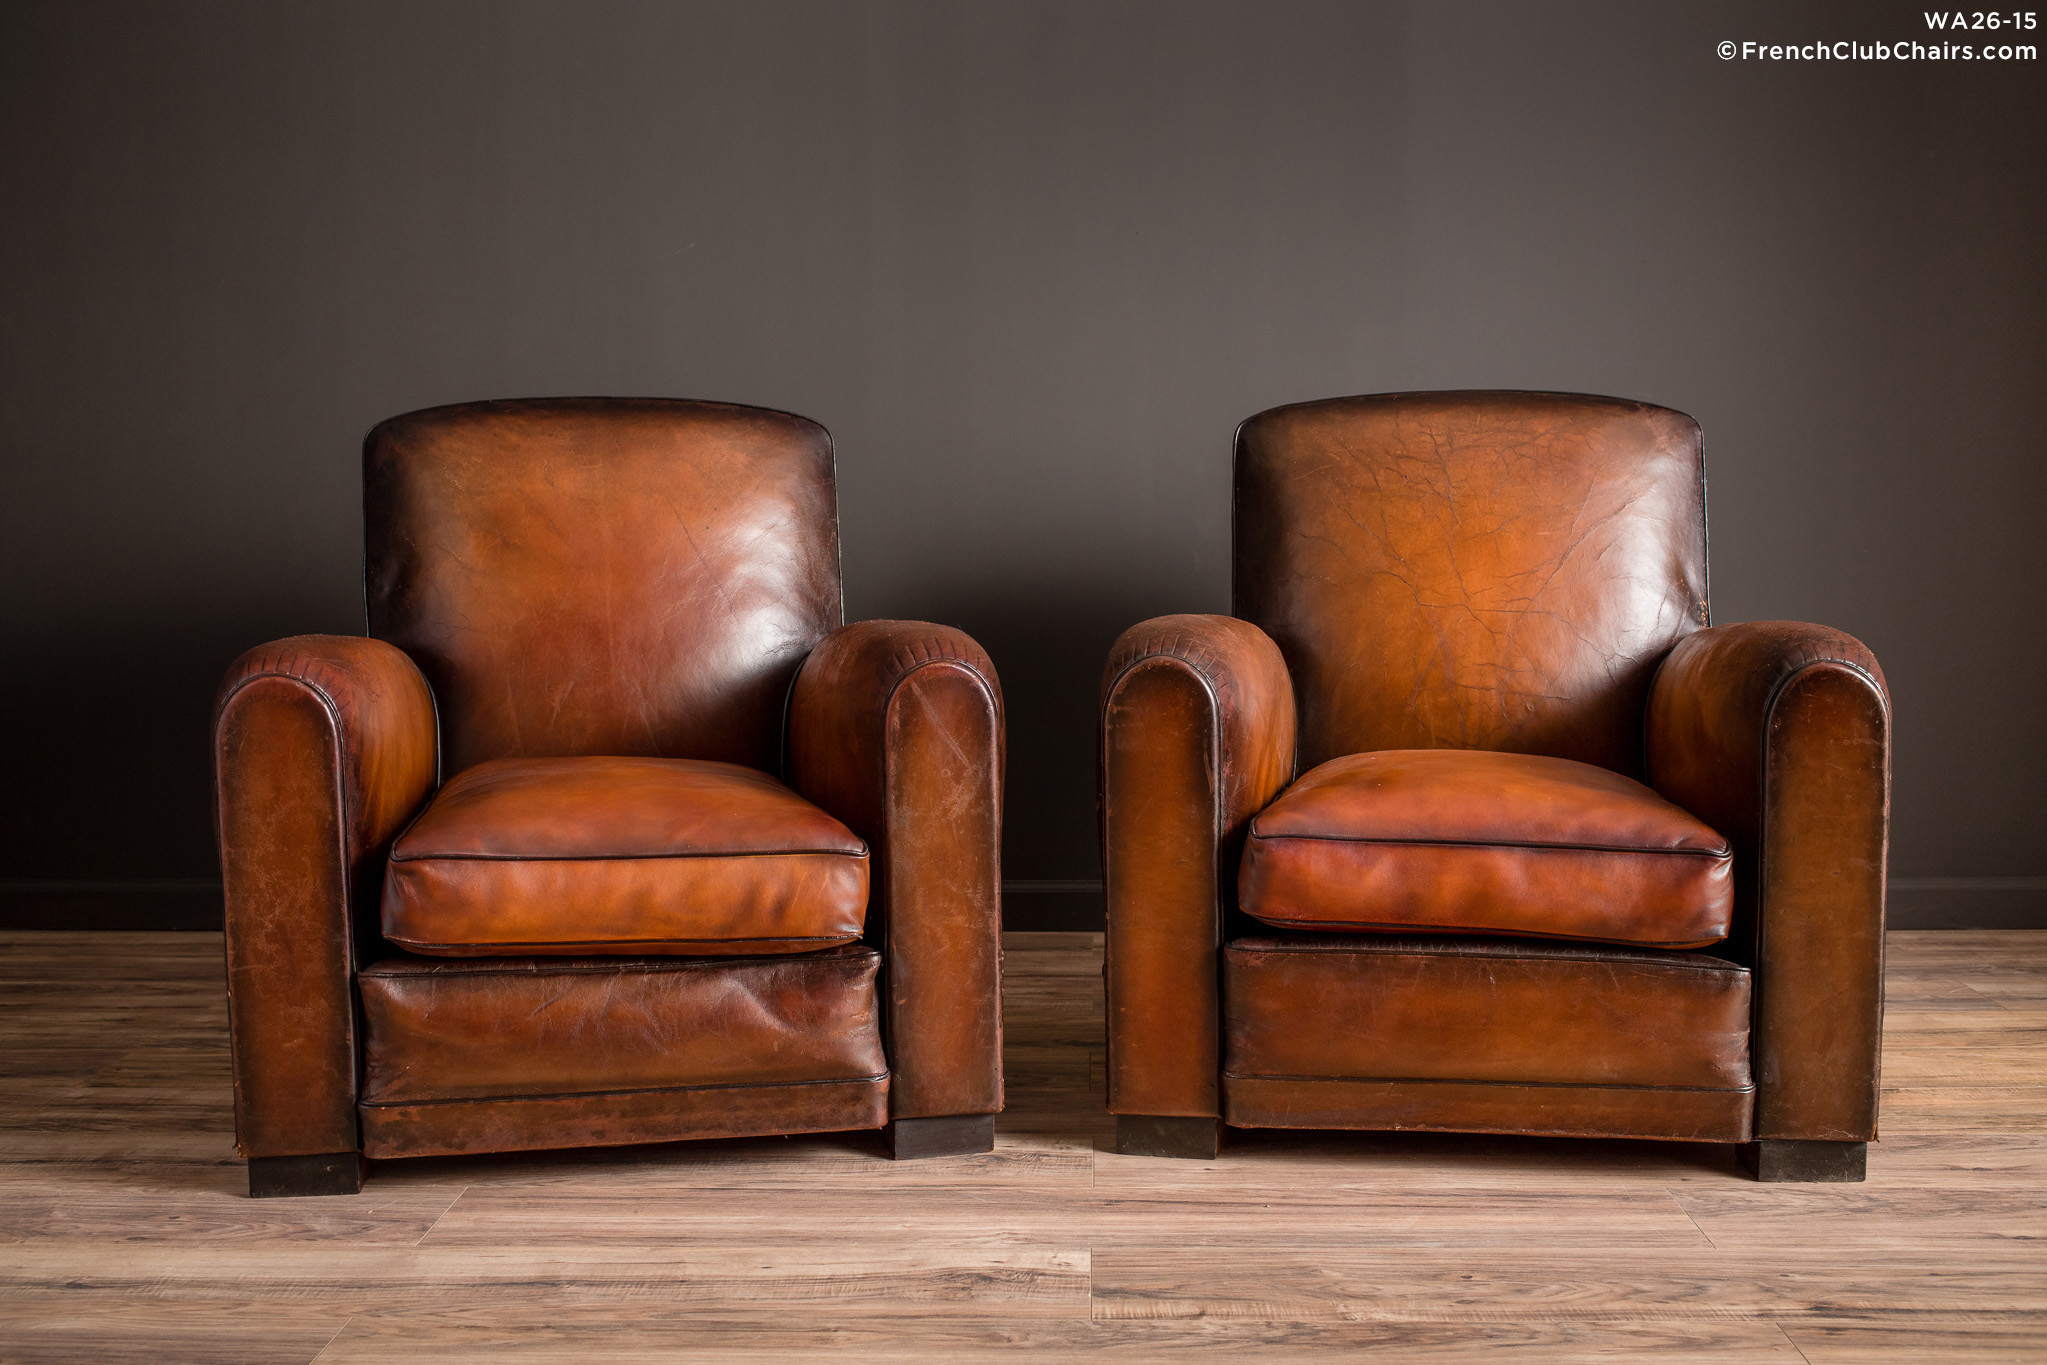 WA_26-15_Pontcharra_Library_Dark_Caramel_Pair_R_1TQ-v01-williams-antiks-leather-french-club-chair-wa_fcccom